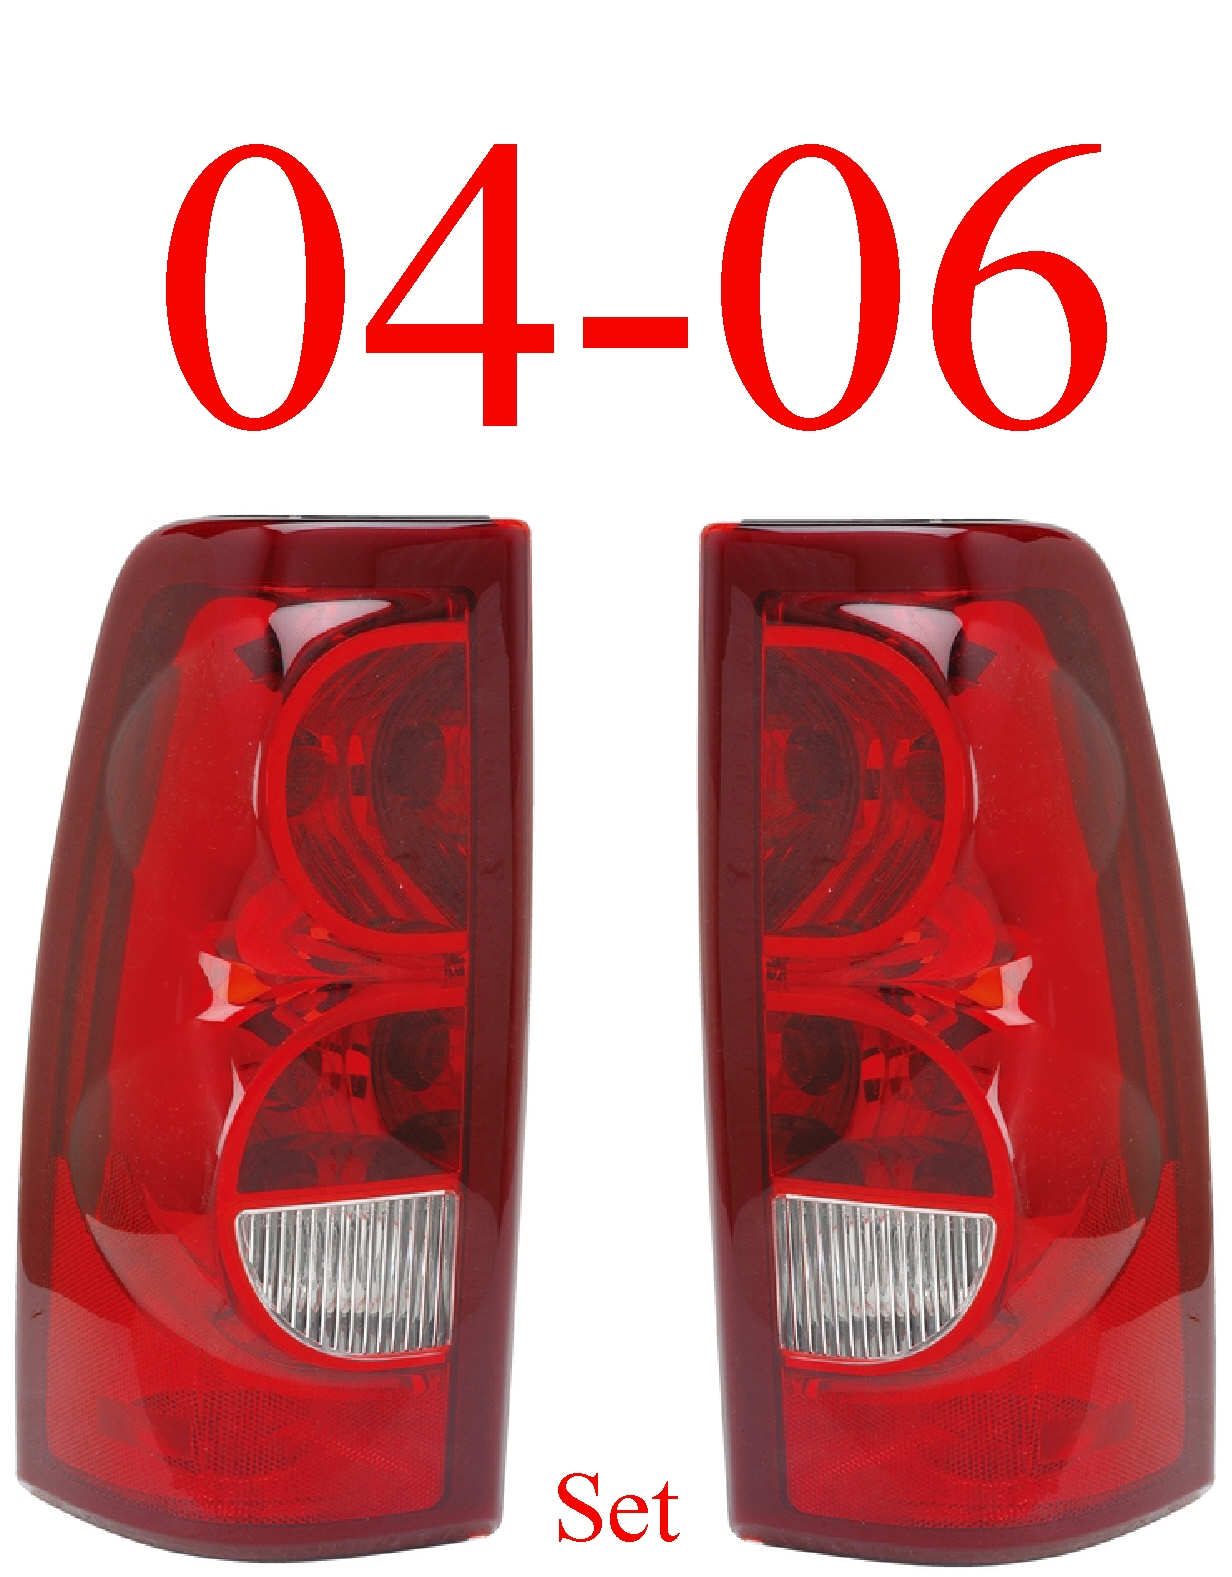 04-06 Chevy Tail Light Set, Silverado